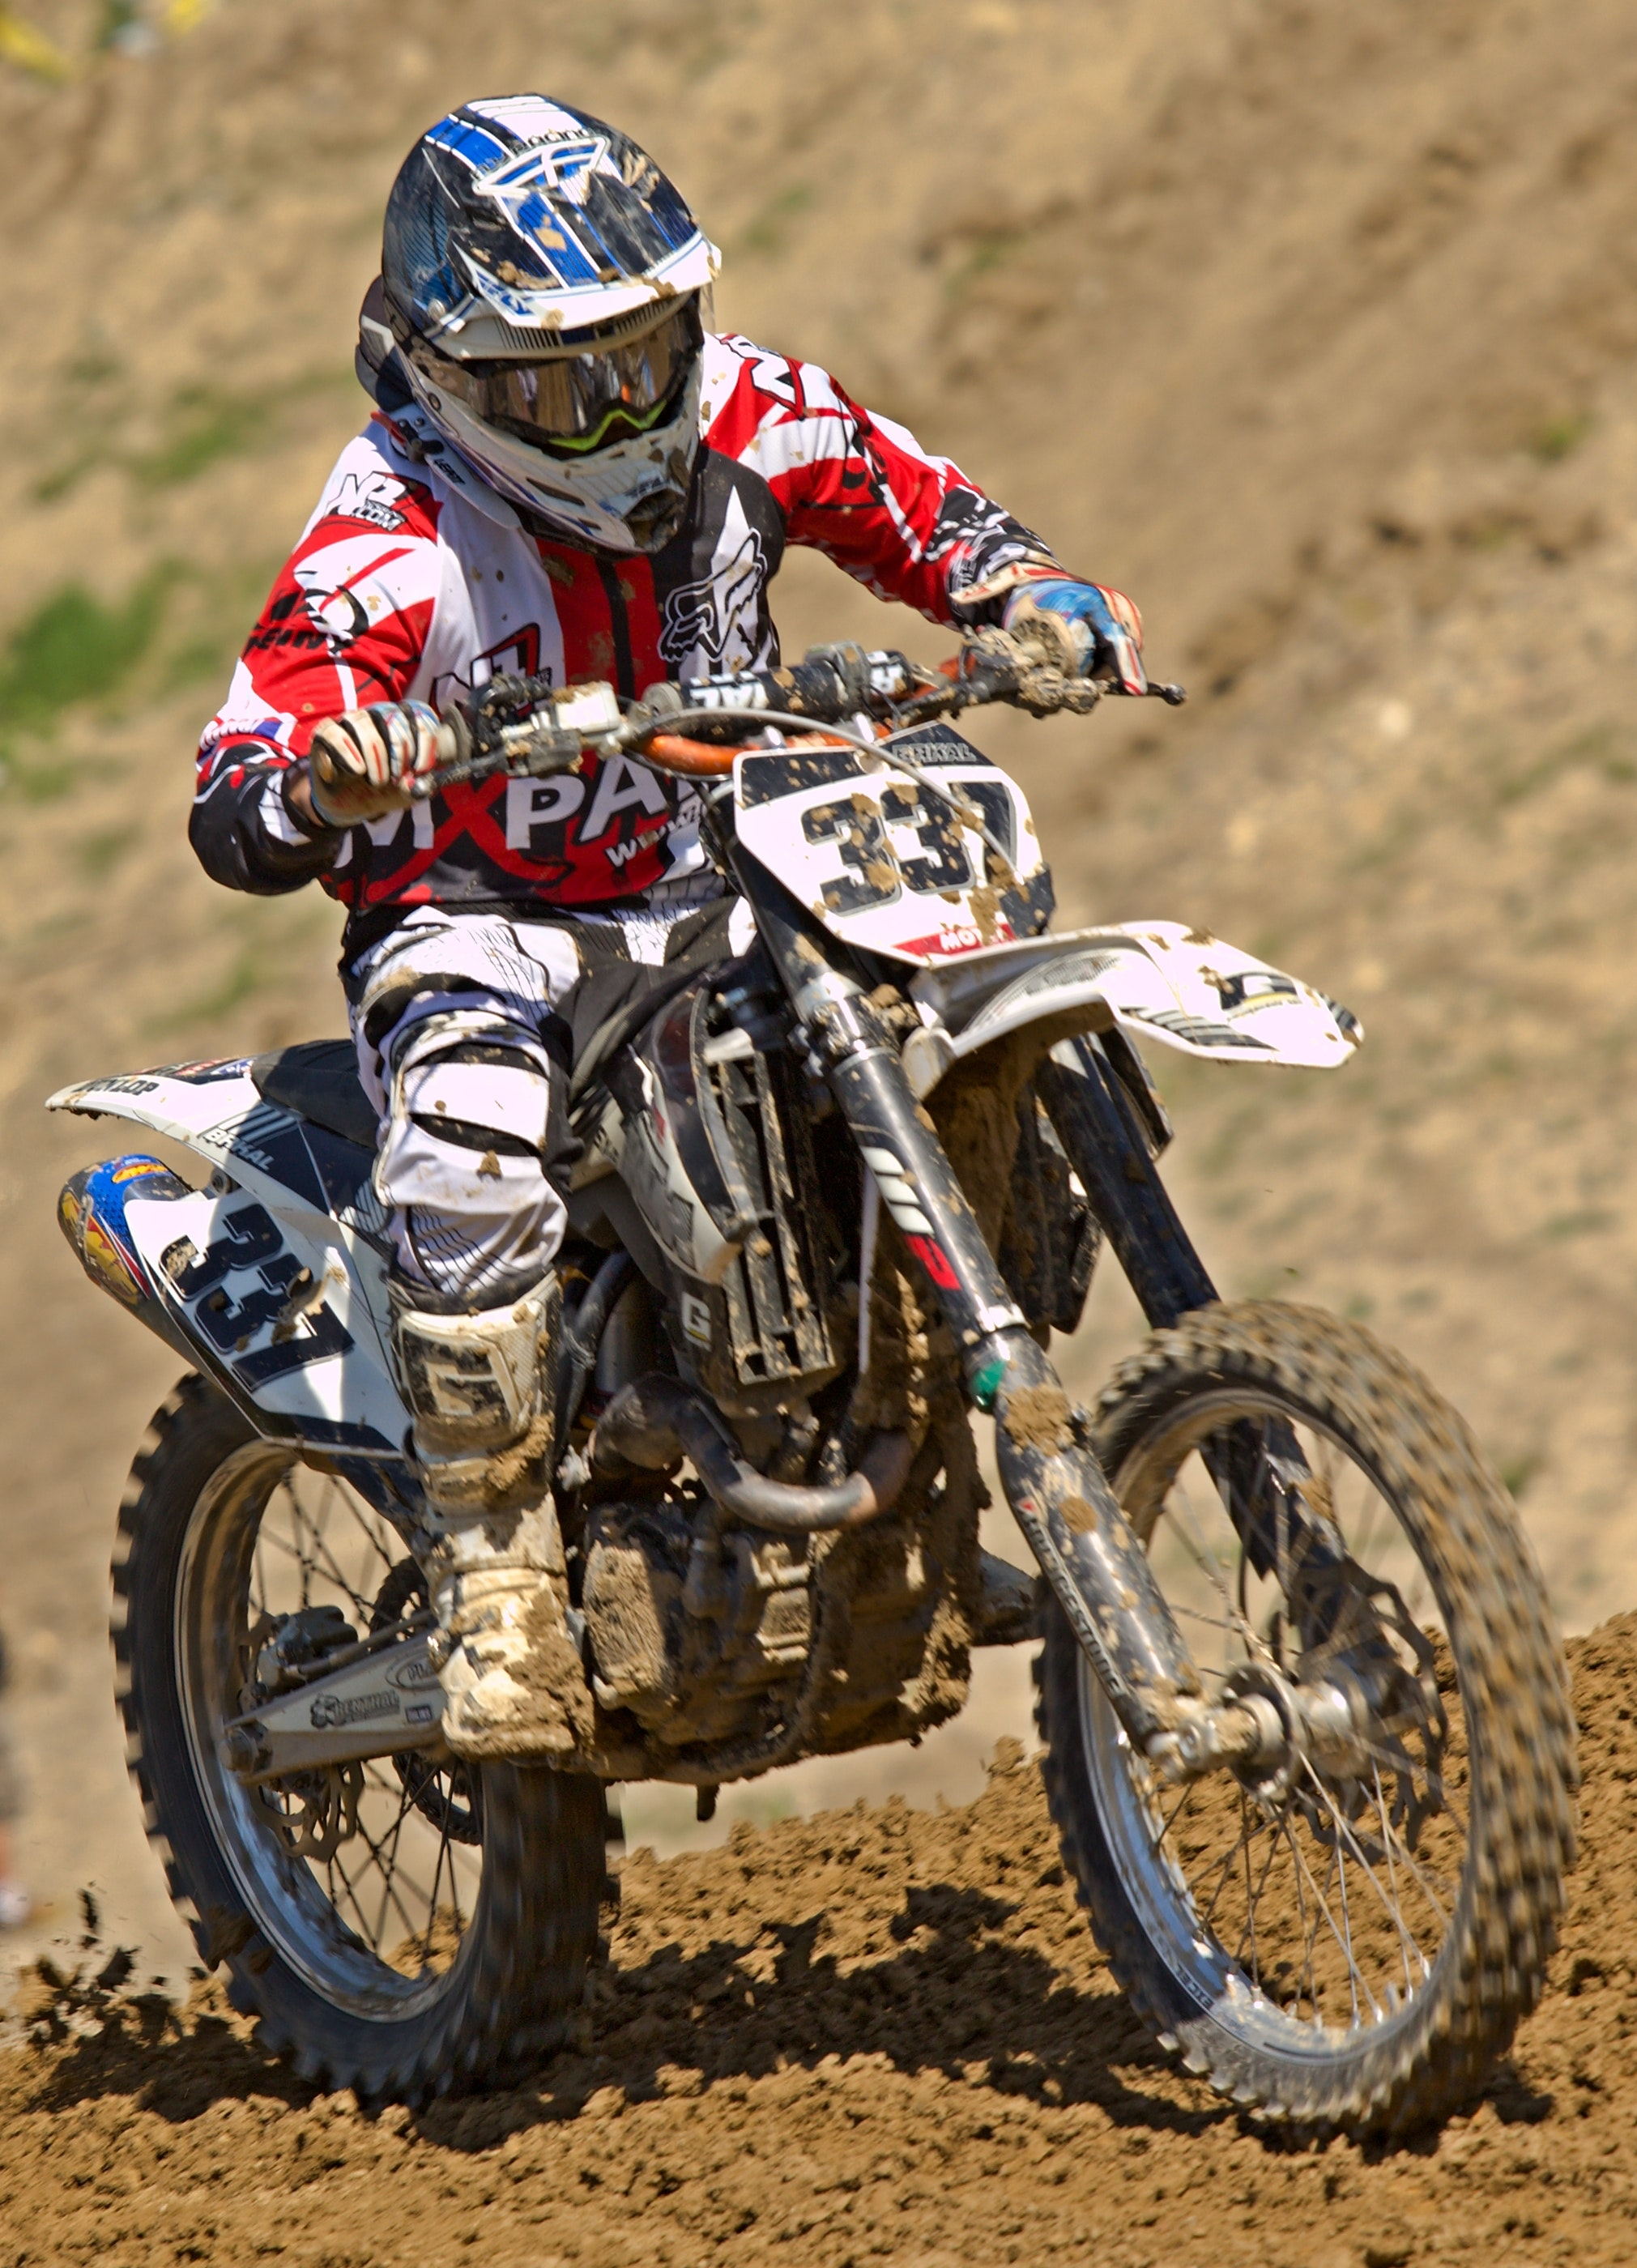 Man Riding Off Road Motorcycle on Trail, Biker, Dirt bike, Helmet, Motocross, HQ Photo